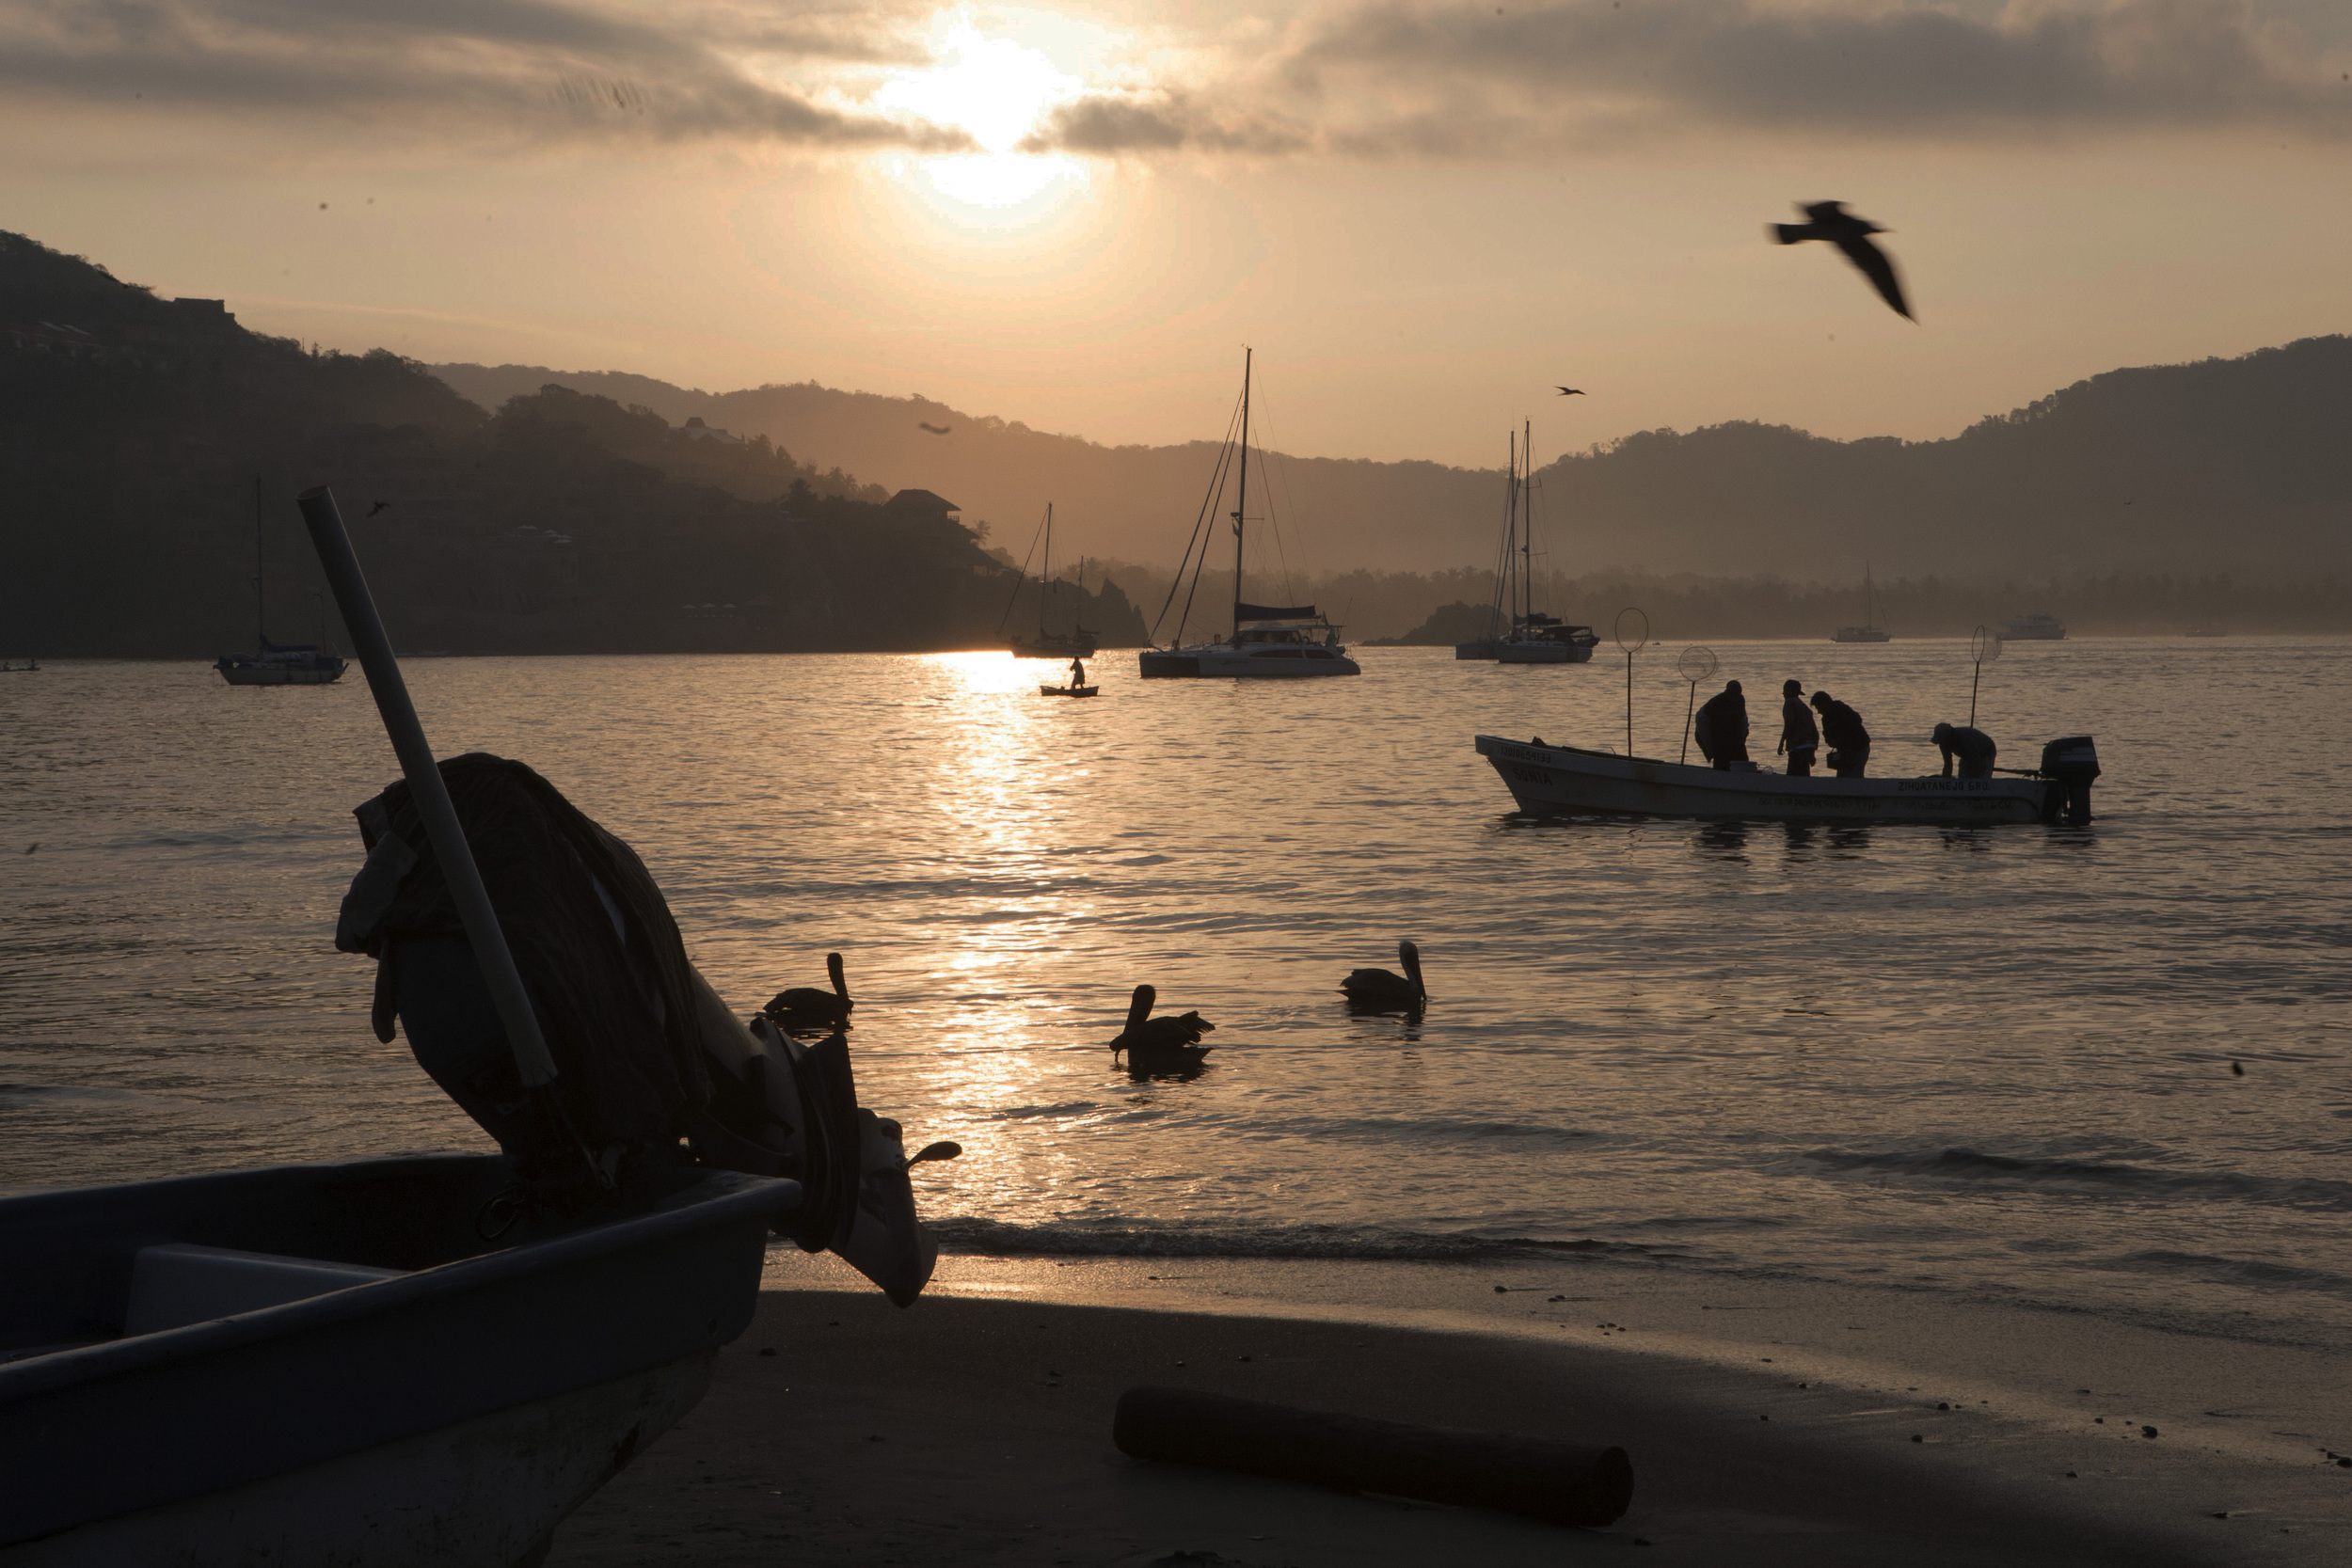 As the sun begins to rise over the calm bay, fishing boats return from a night's work to Playa Principal, the main beach in the center of town of Zihuatanejo. ©Gail Fisher